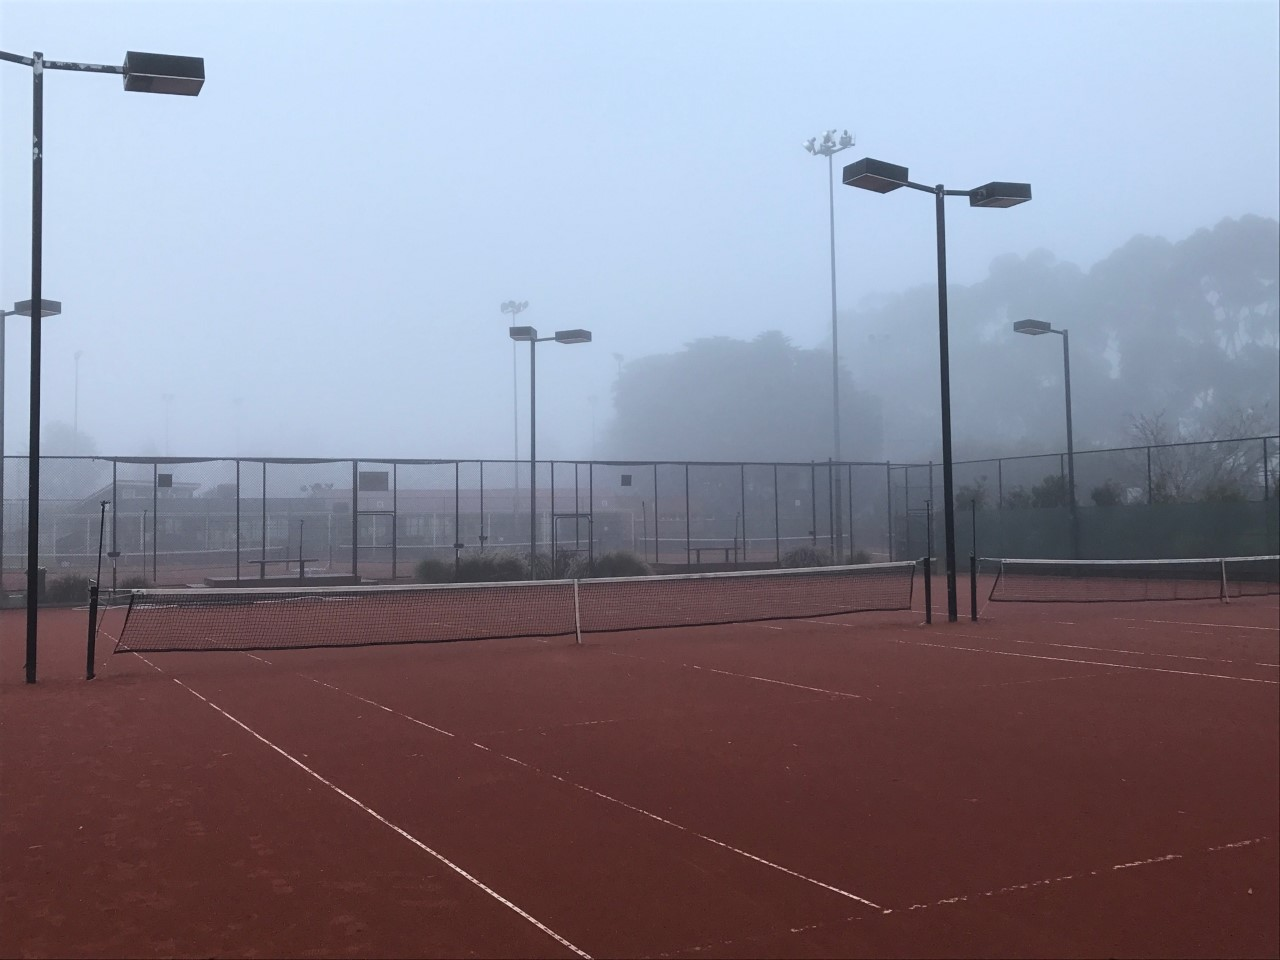 Courts in fog